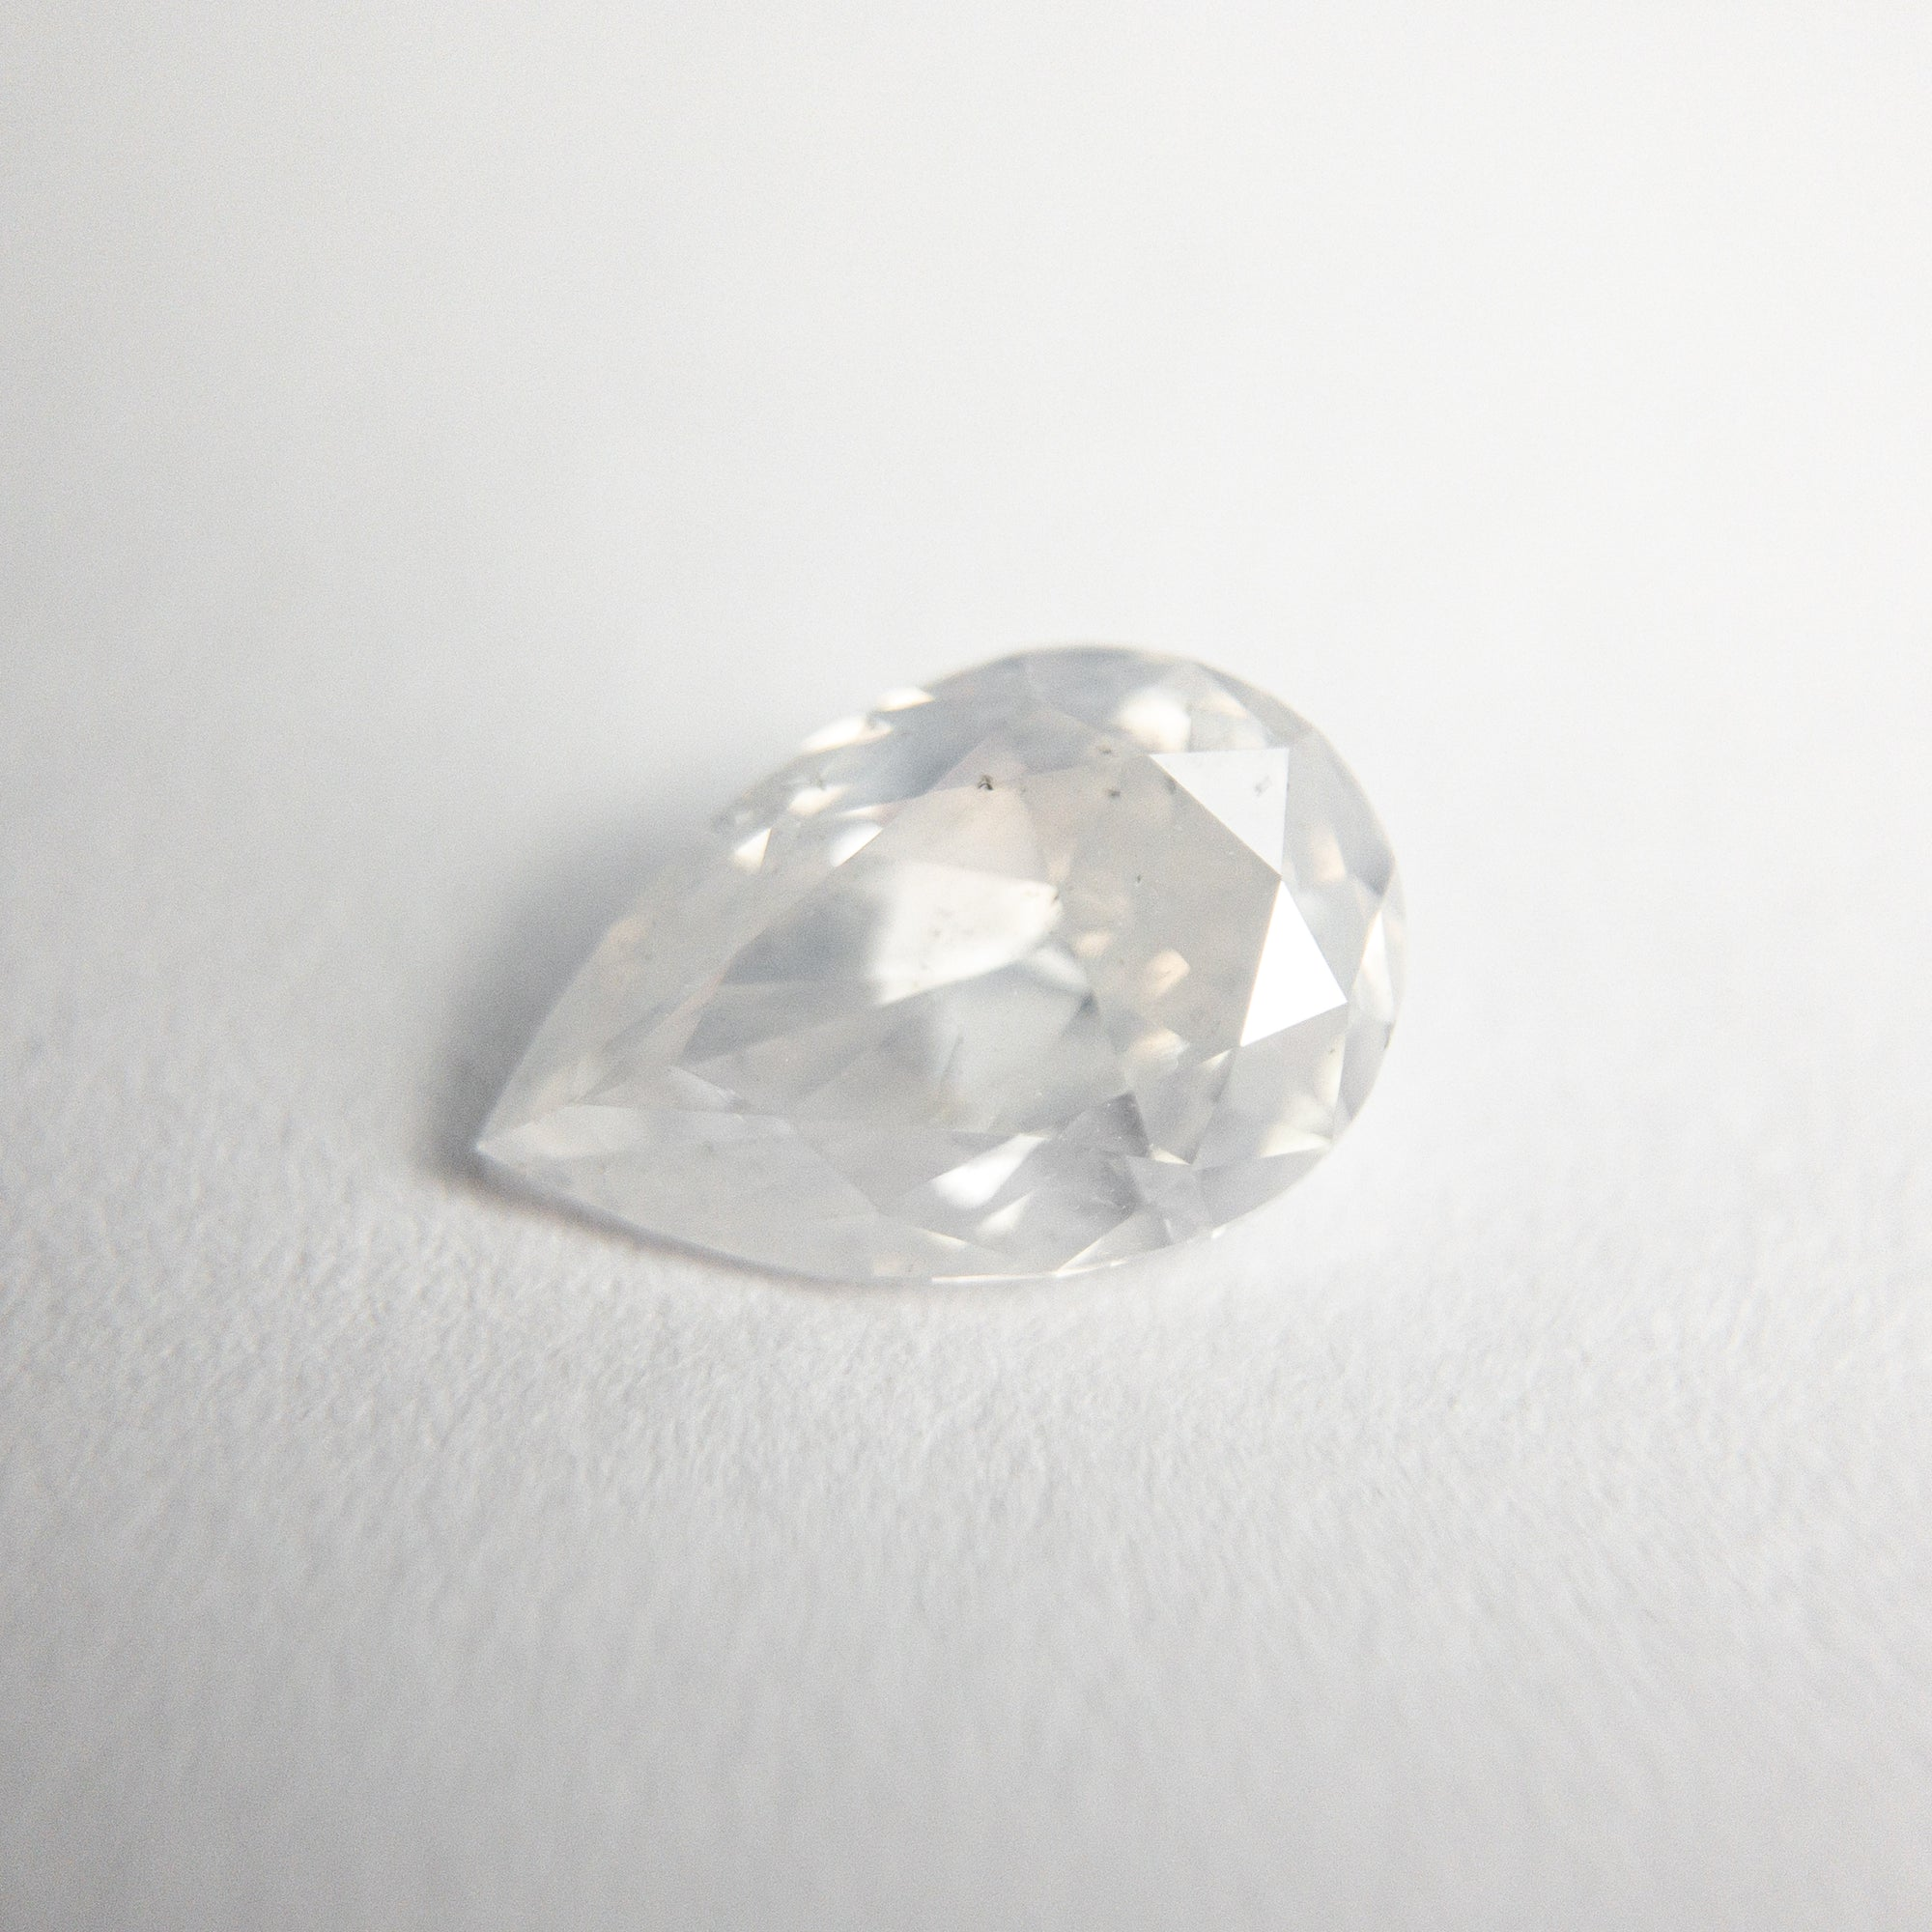 0.87ct 8.14x5.37x3.02mm Pear Brilliant 18733-03